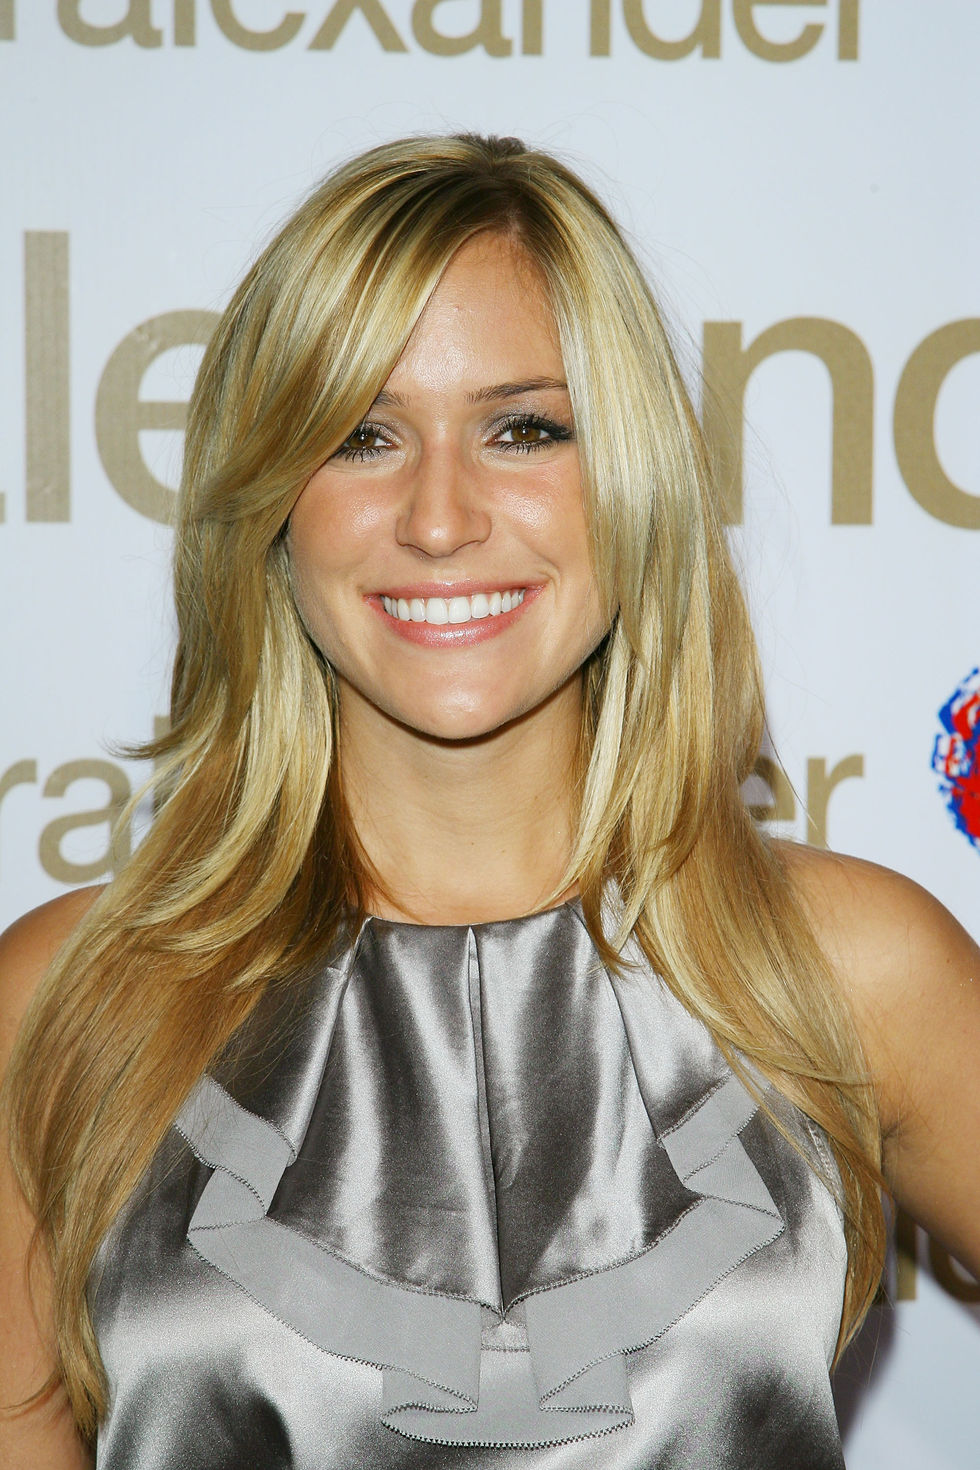 kristin-cavallari-rare-by-nicole-maloney-launch-party-in-los-angeles-01